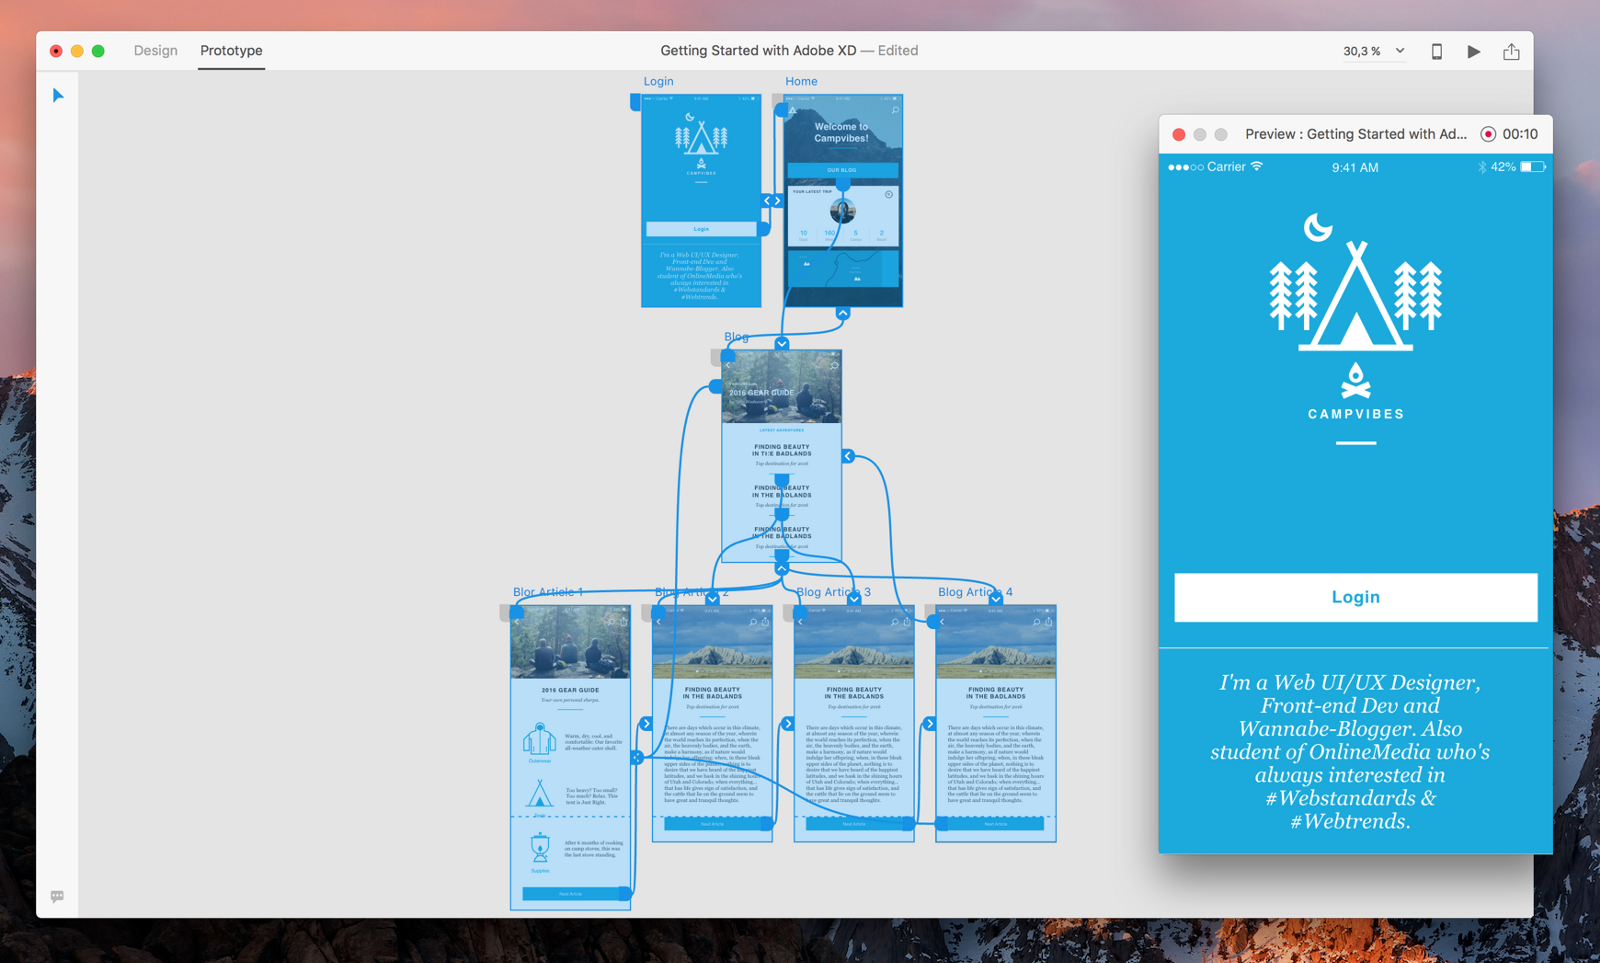 Preview your prototype on yourMac - Adobe XD